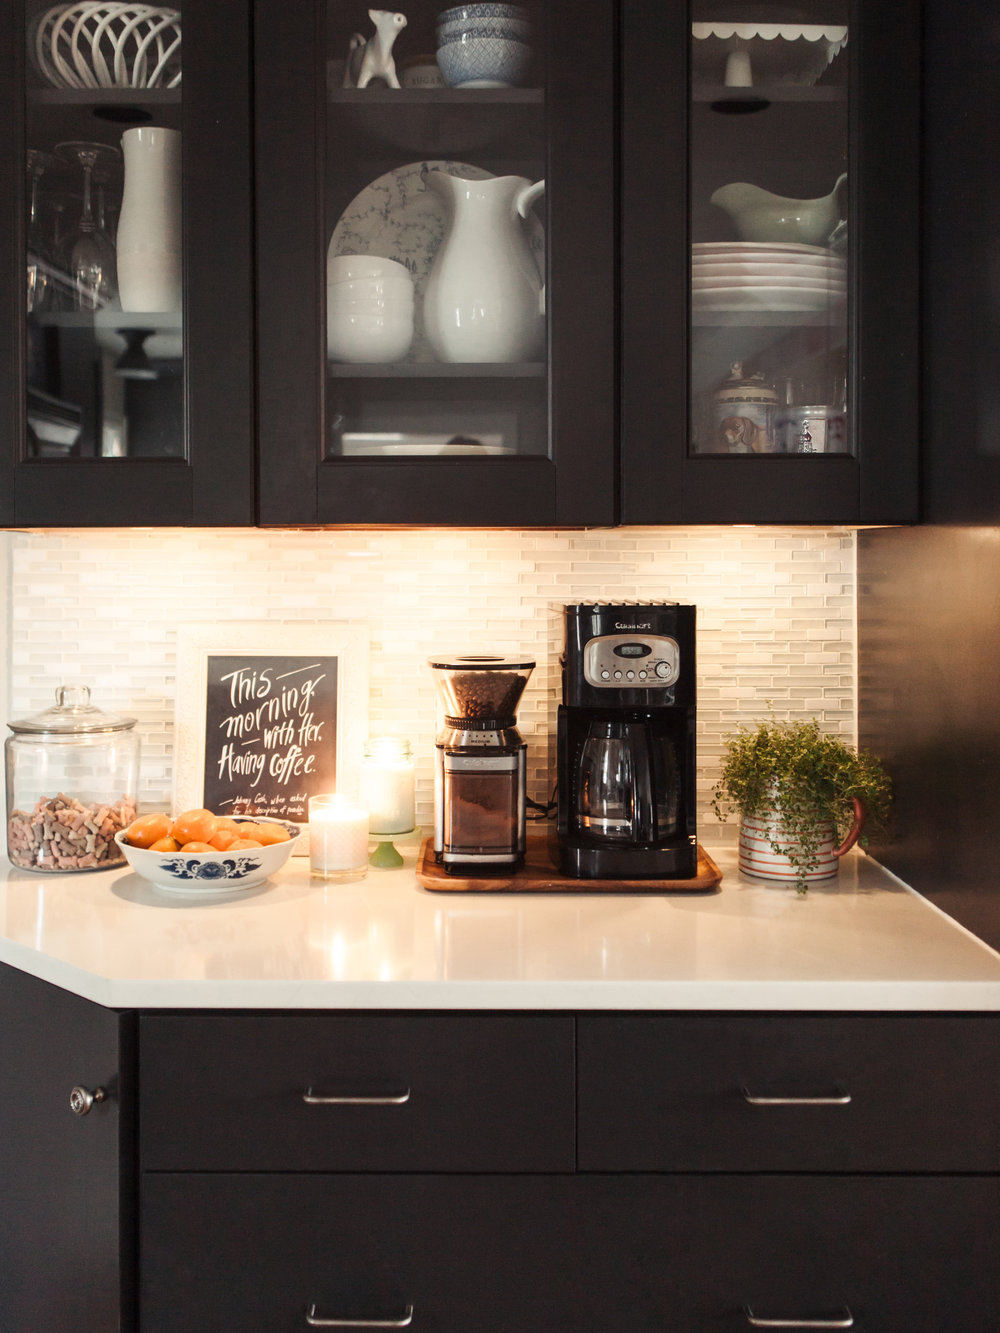 Diy under cabinet lighting with a warm glow hack haven nest diy under cabinet lighting with a warm glow hack aloadofball Image collections